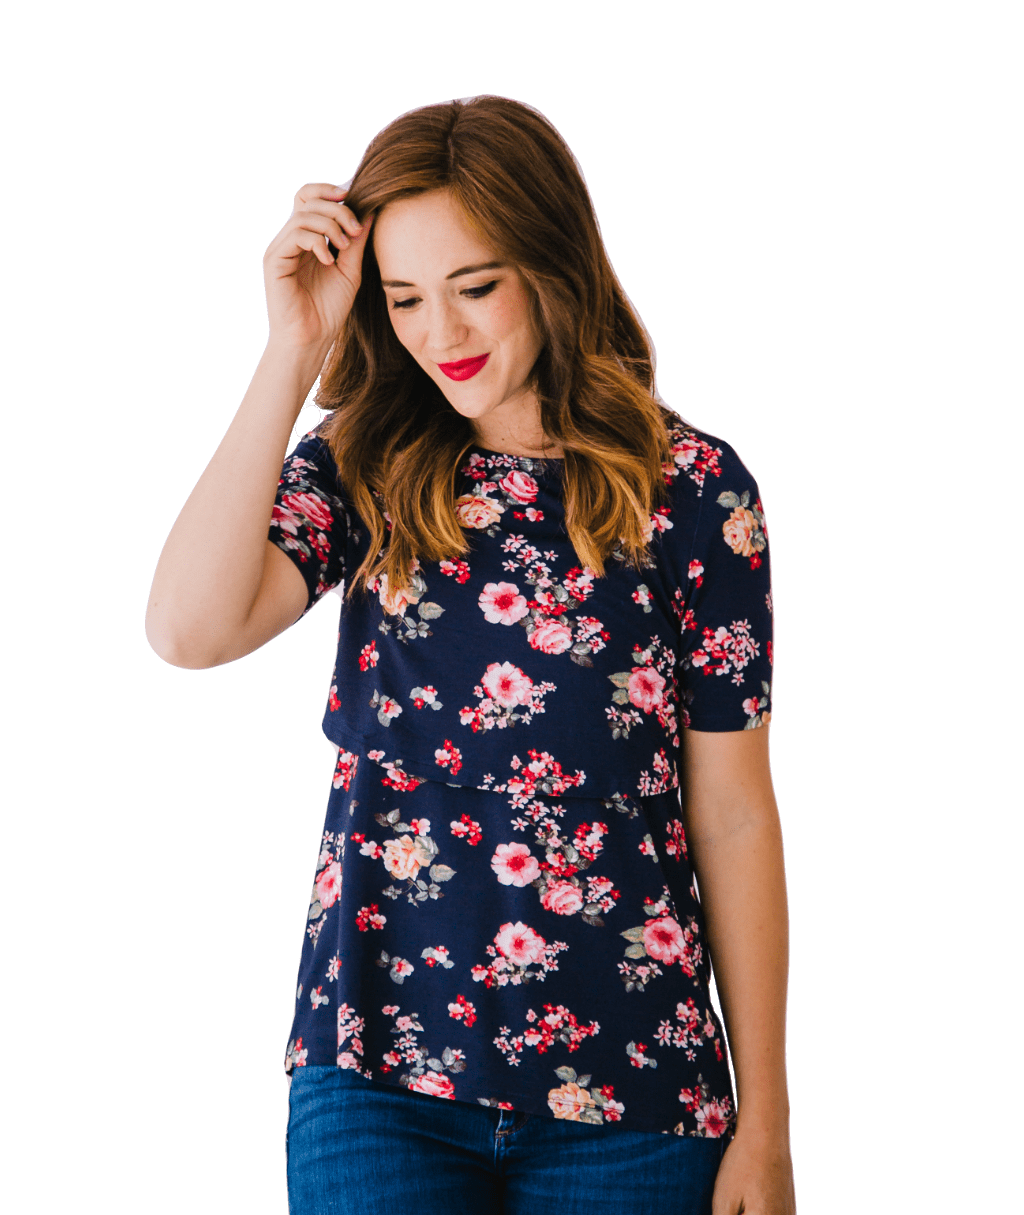 FloralNavy Nursing Shirt -Perfect for Pregnancy and Breastfeeding